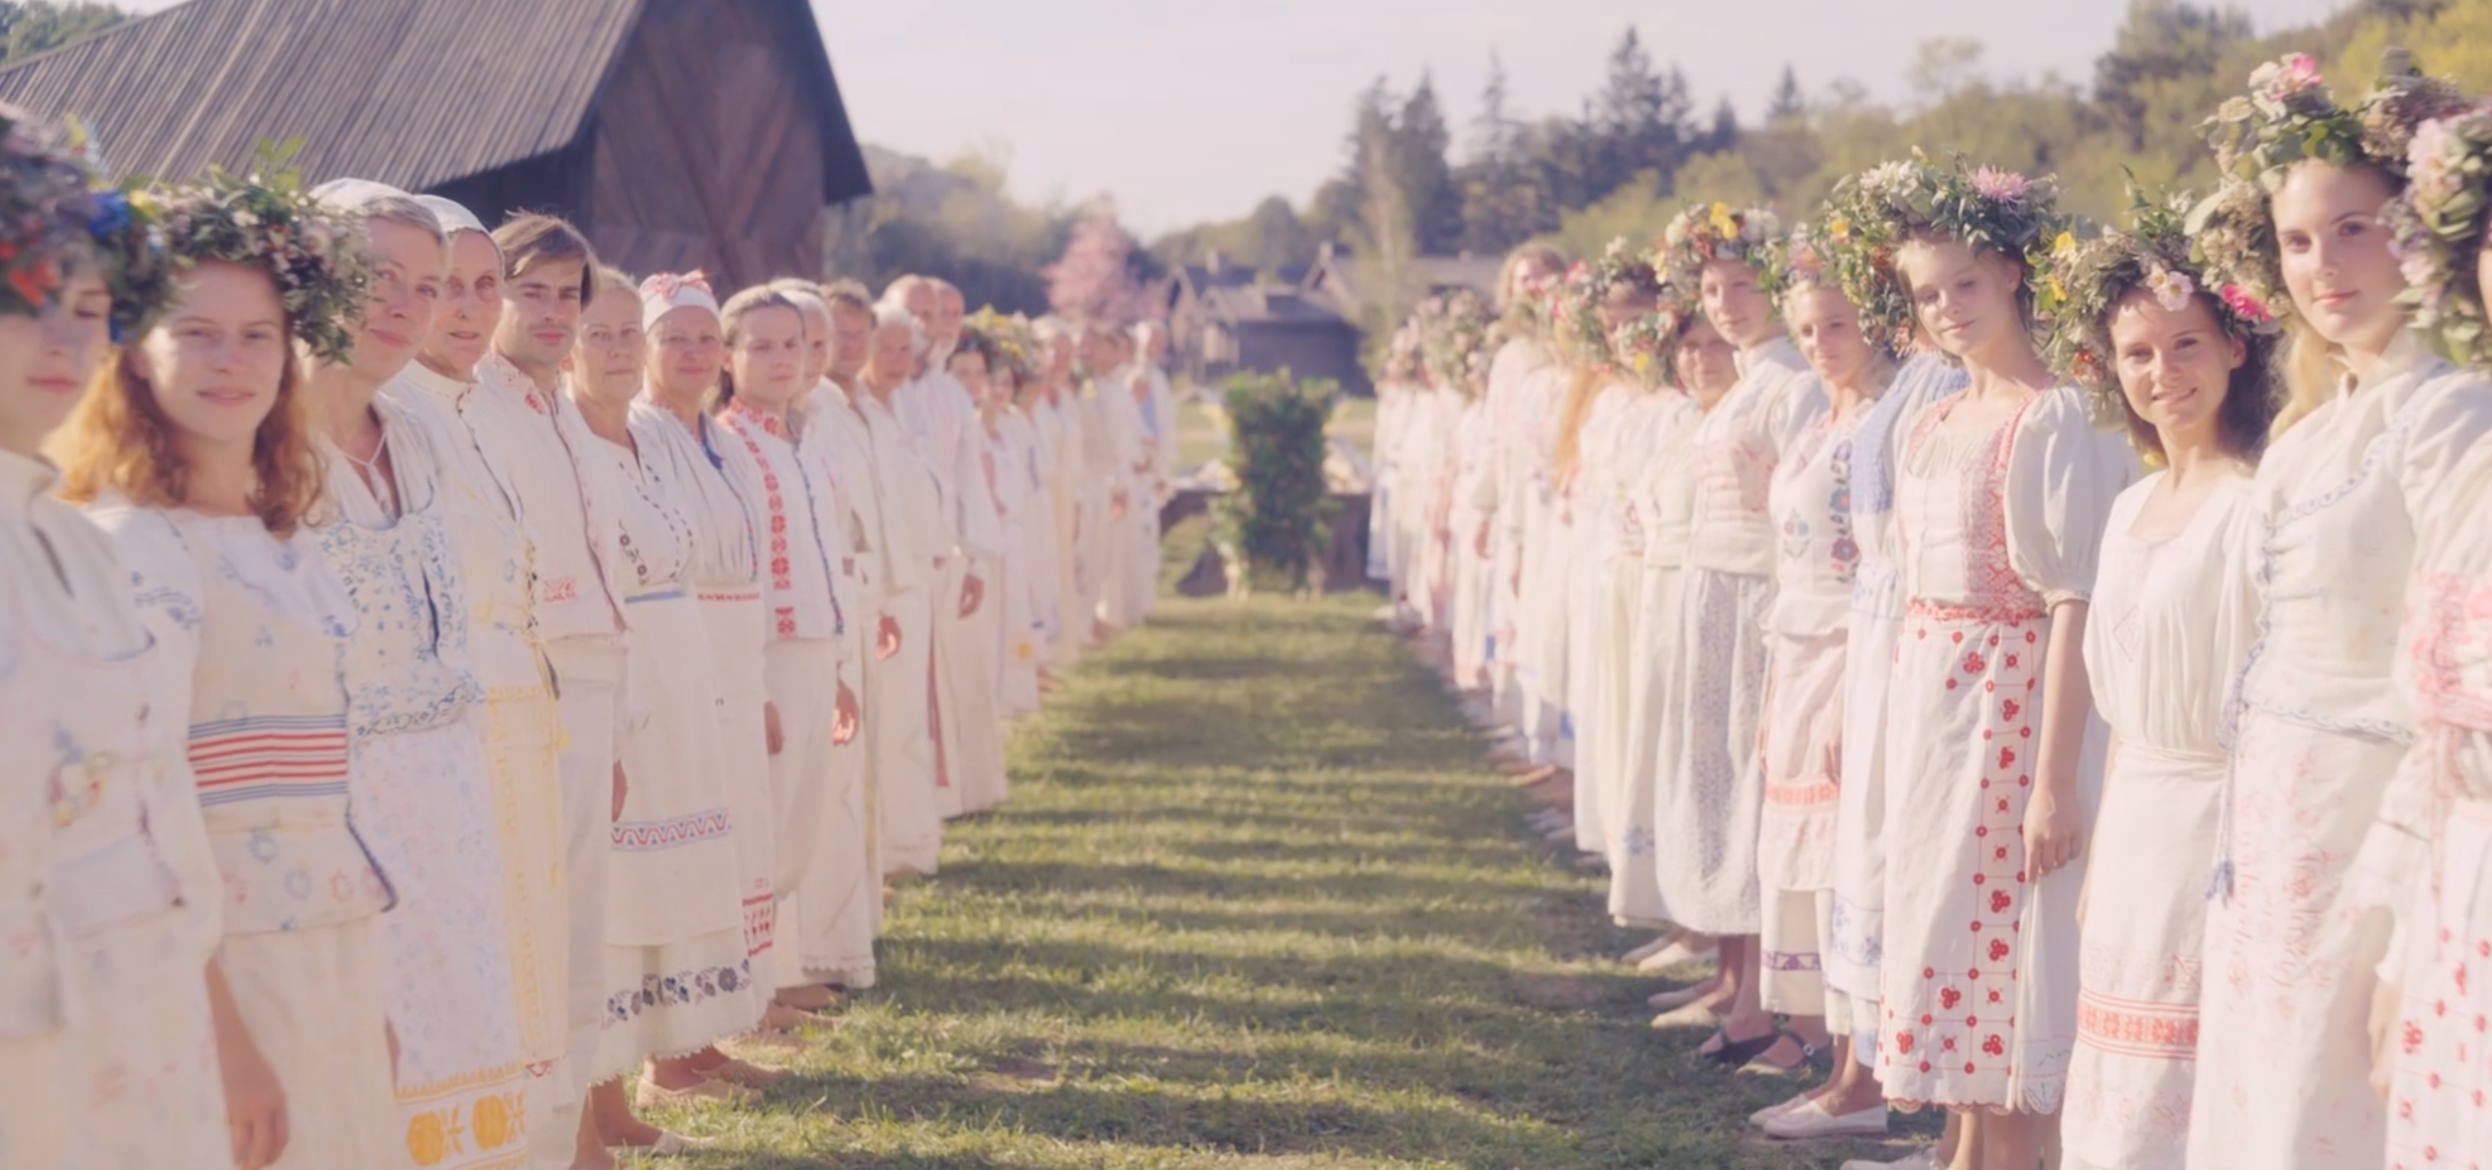 'Midsommar': Watch Trailer for New Horror Movie About Cult Disguised as Festival